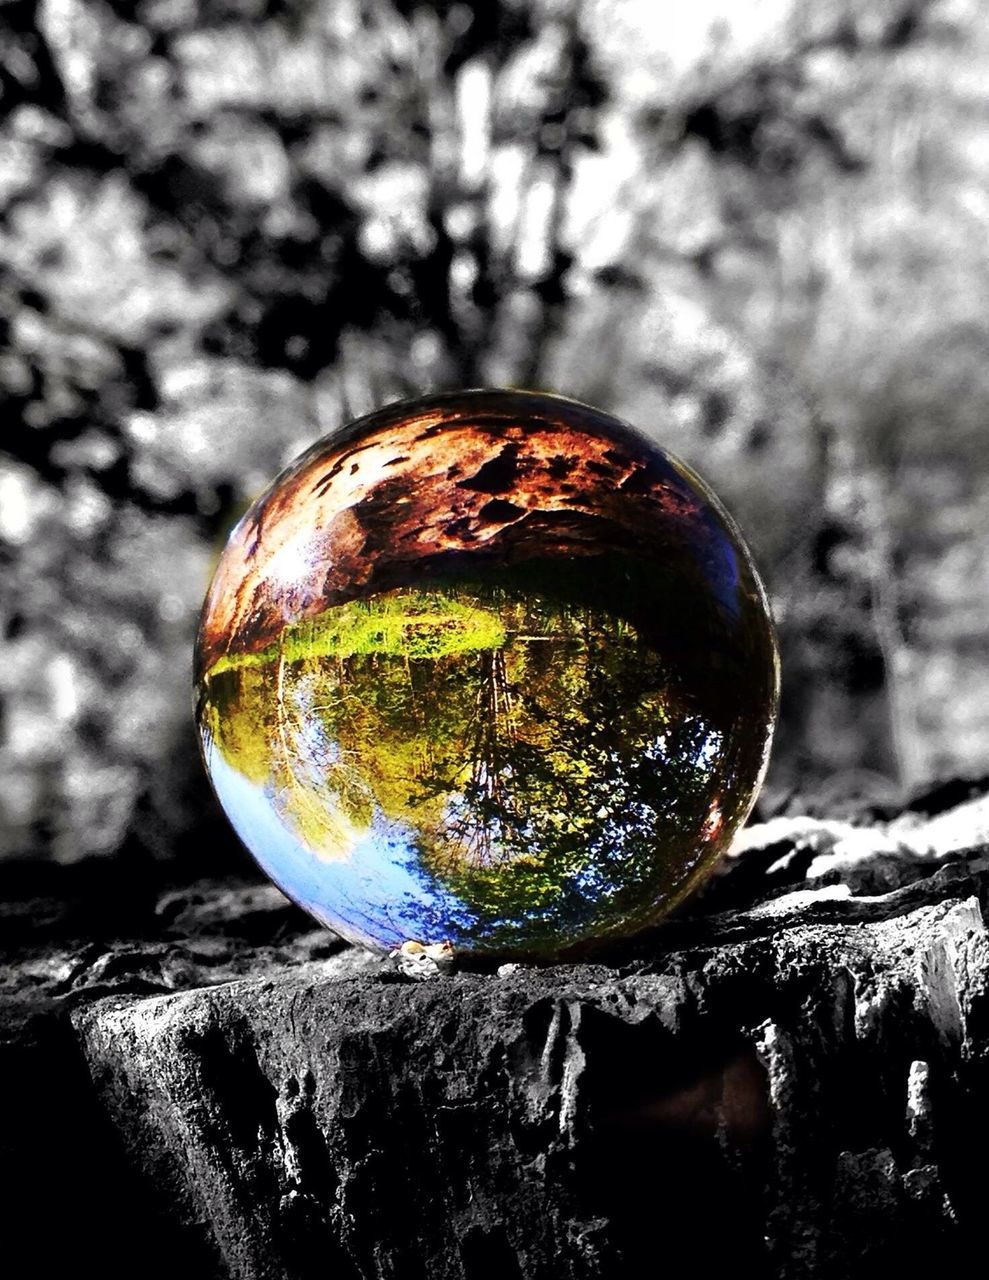 sphere, close-up, reflection, no people, outdoors, fragility, tree, day, nature, beauty in nature